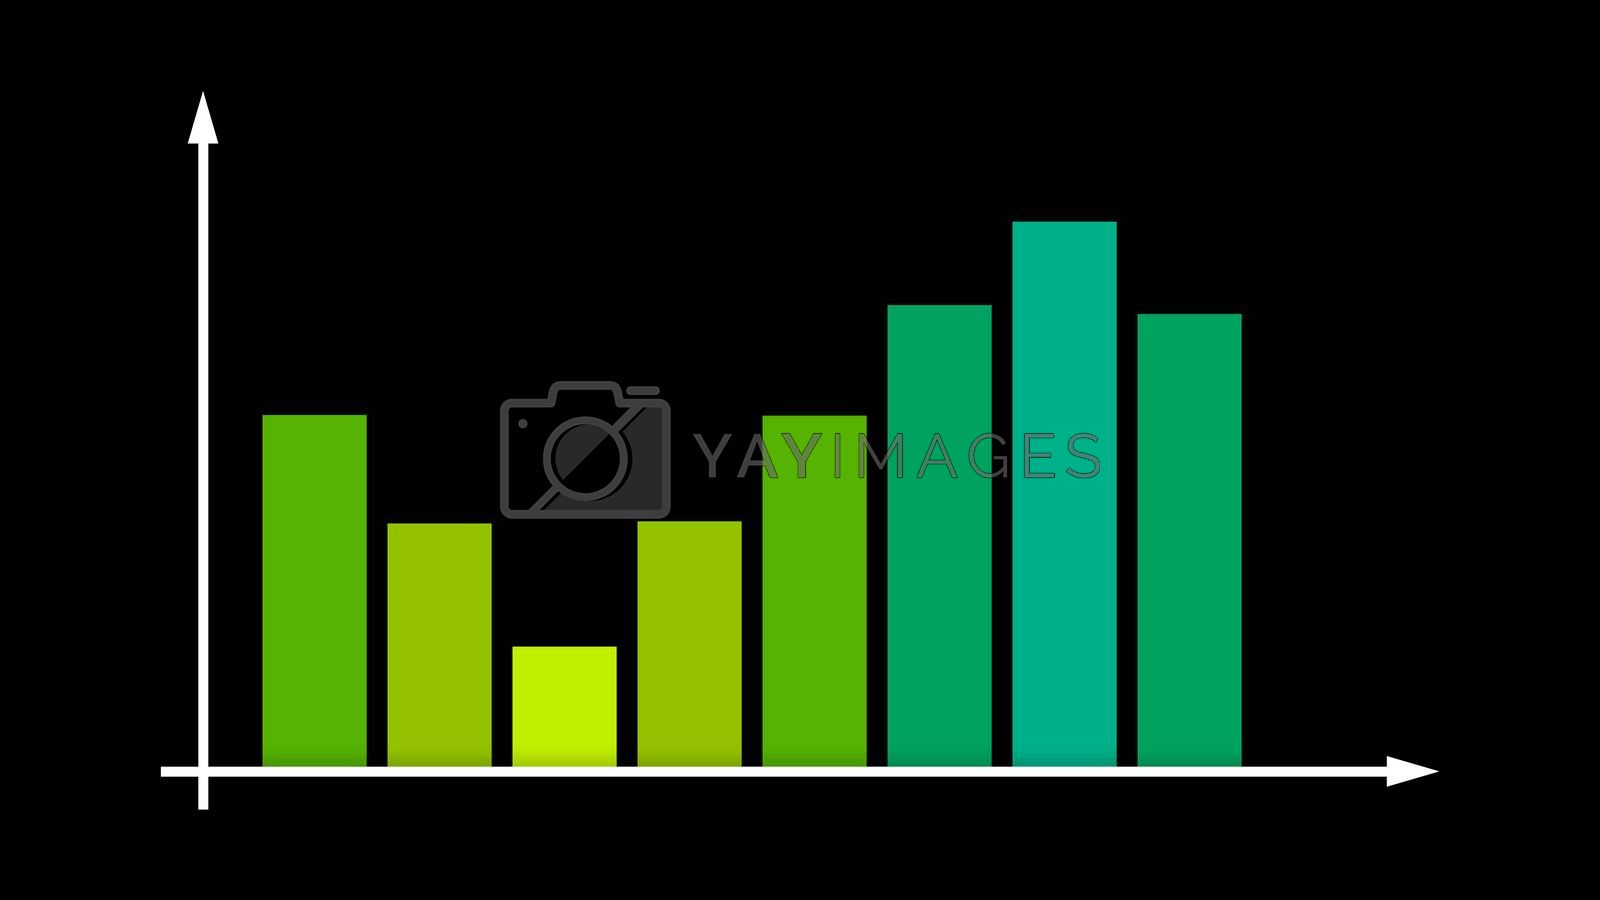 A stunning 3d illustration of a business bar graph with green and yellow lines moving up and down in a system of axes with spiky arrows and showing income in the black backdrop.